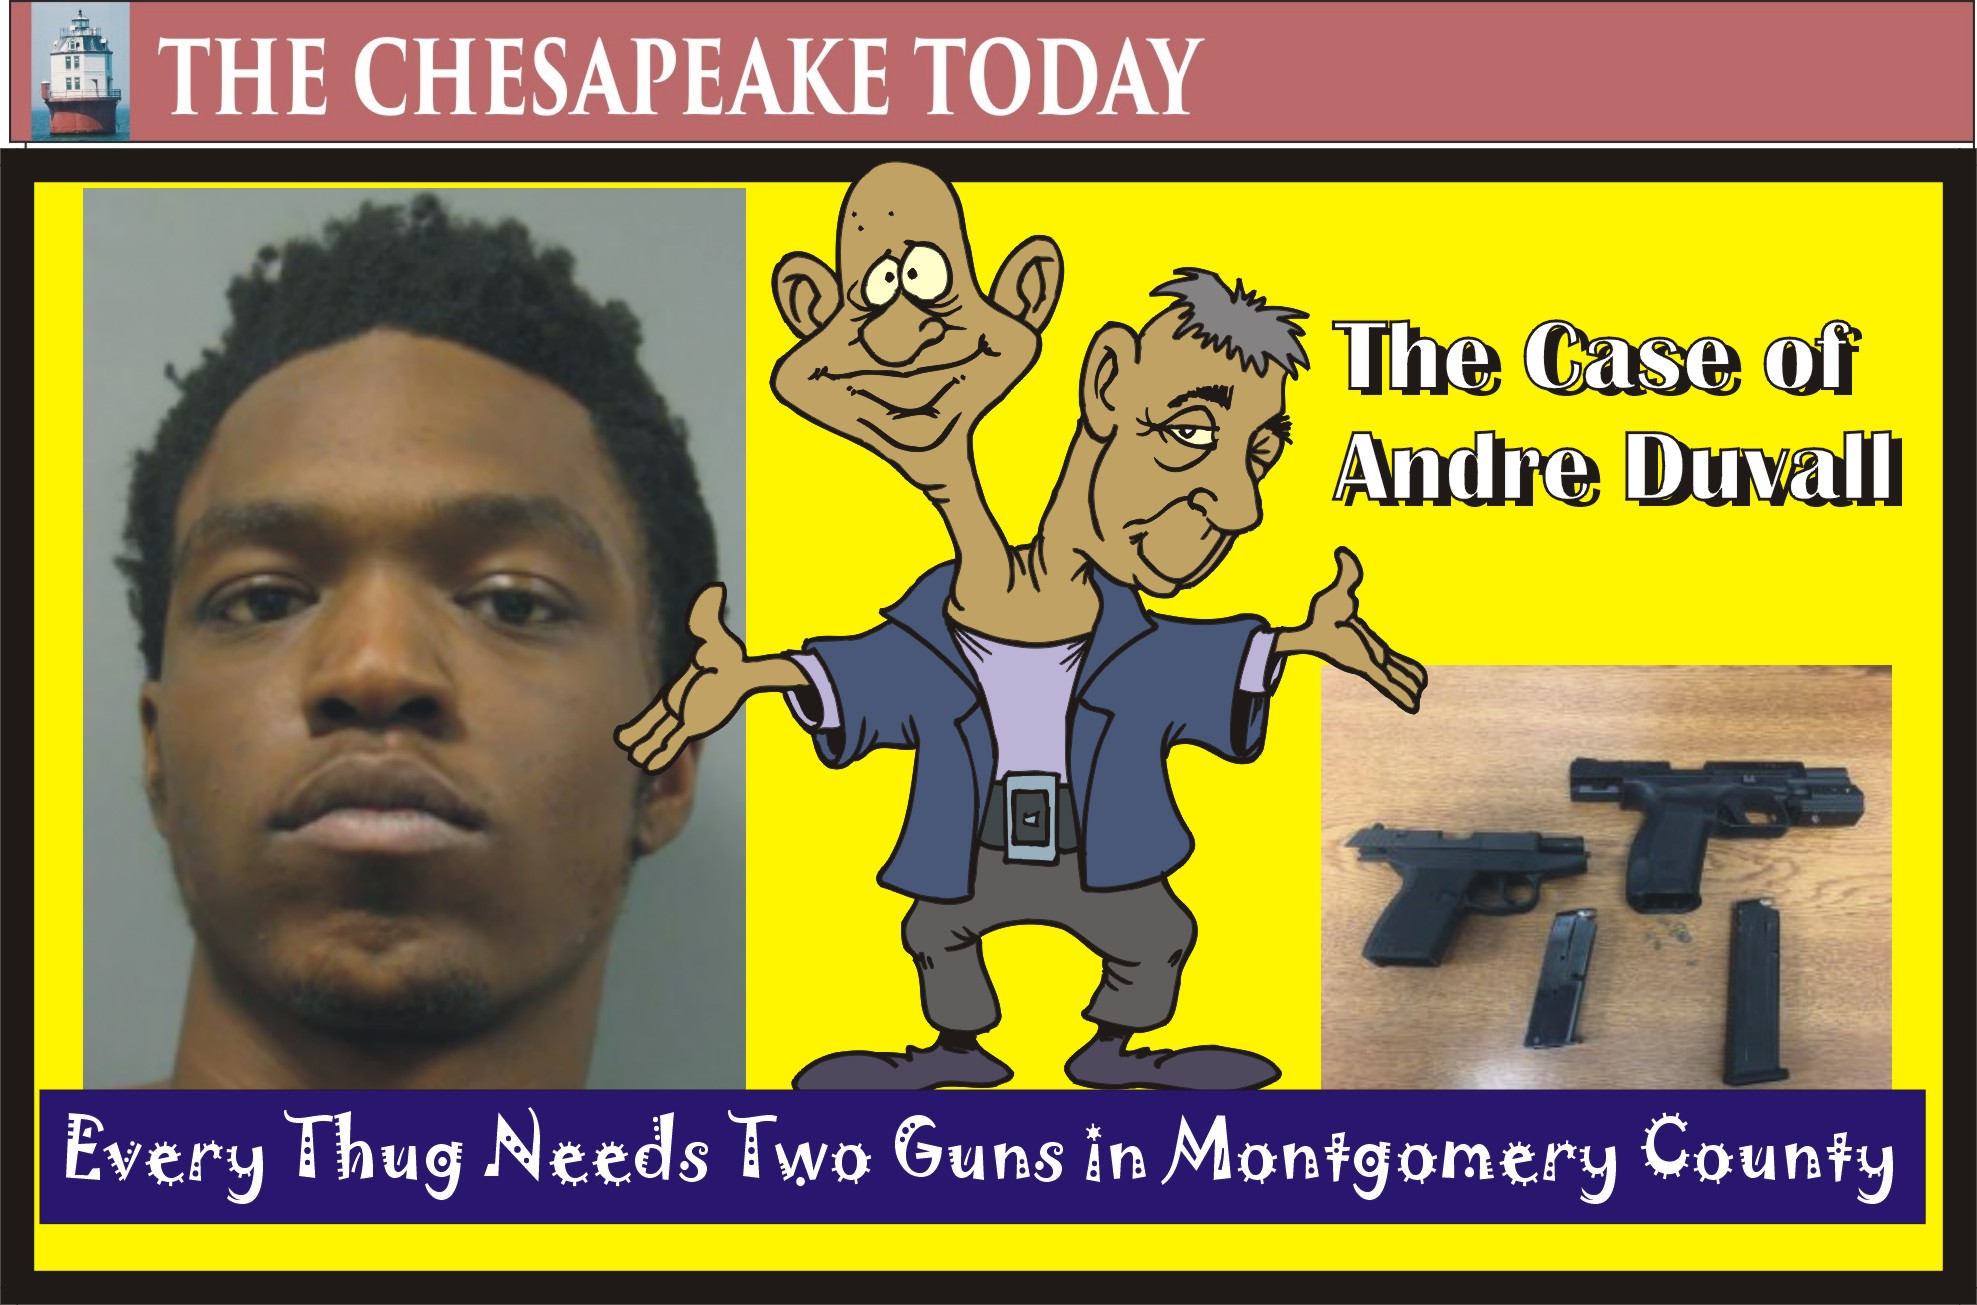 MONTGOMERY POLICE BEAT: Gun-felon Andre Duvall is heading to some mass incarceration vacay time in the Big House after being nabbed with drugs and loaded guns